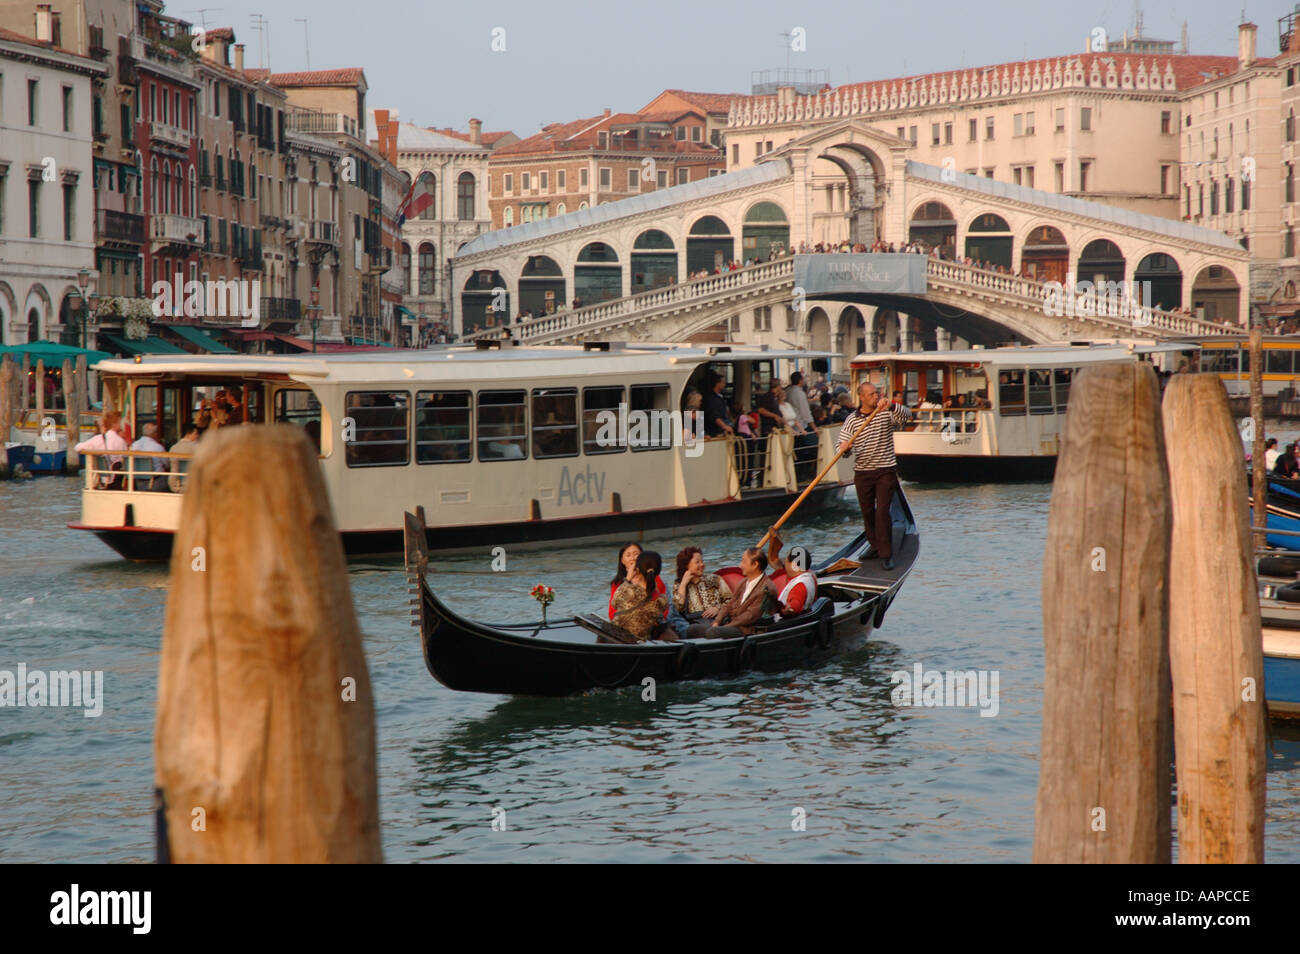 Late afternoon sun on a gondola and vaporetto water buses on the Grand Canal near the Rialto Bridge Venice. - Stock Image